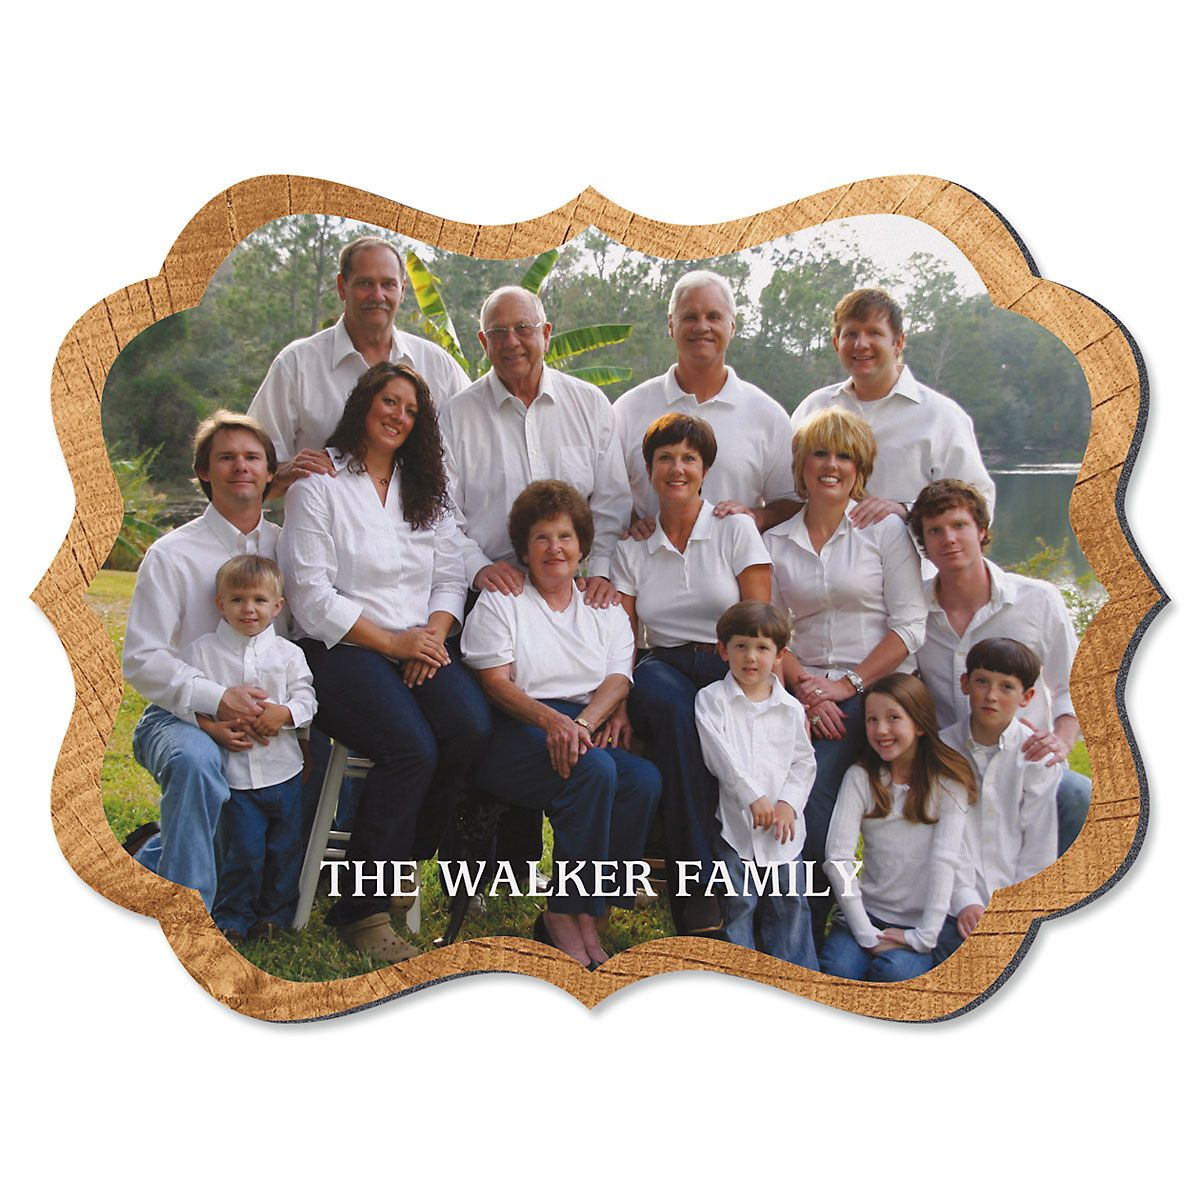 Midtone Wood Family Name Benelux Personalized Photo Plaque